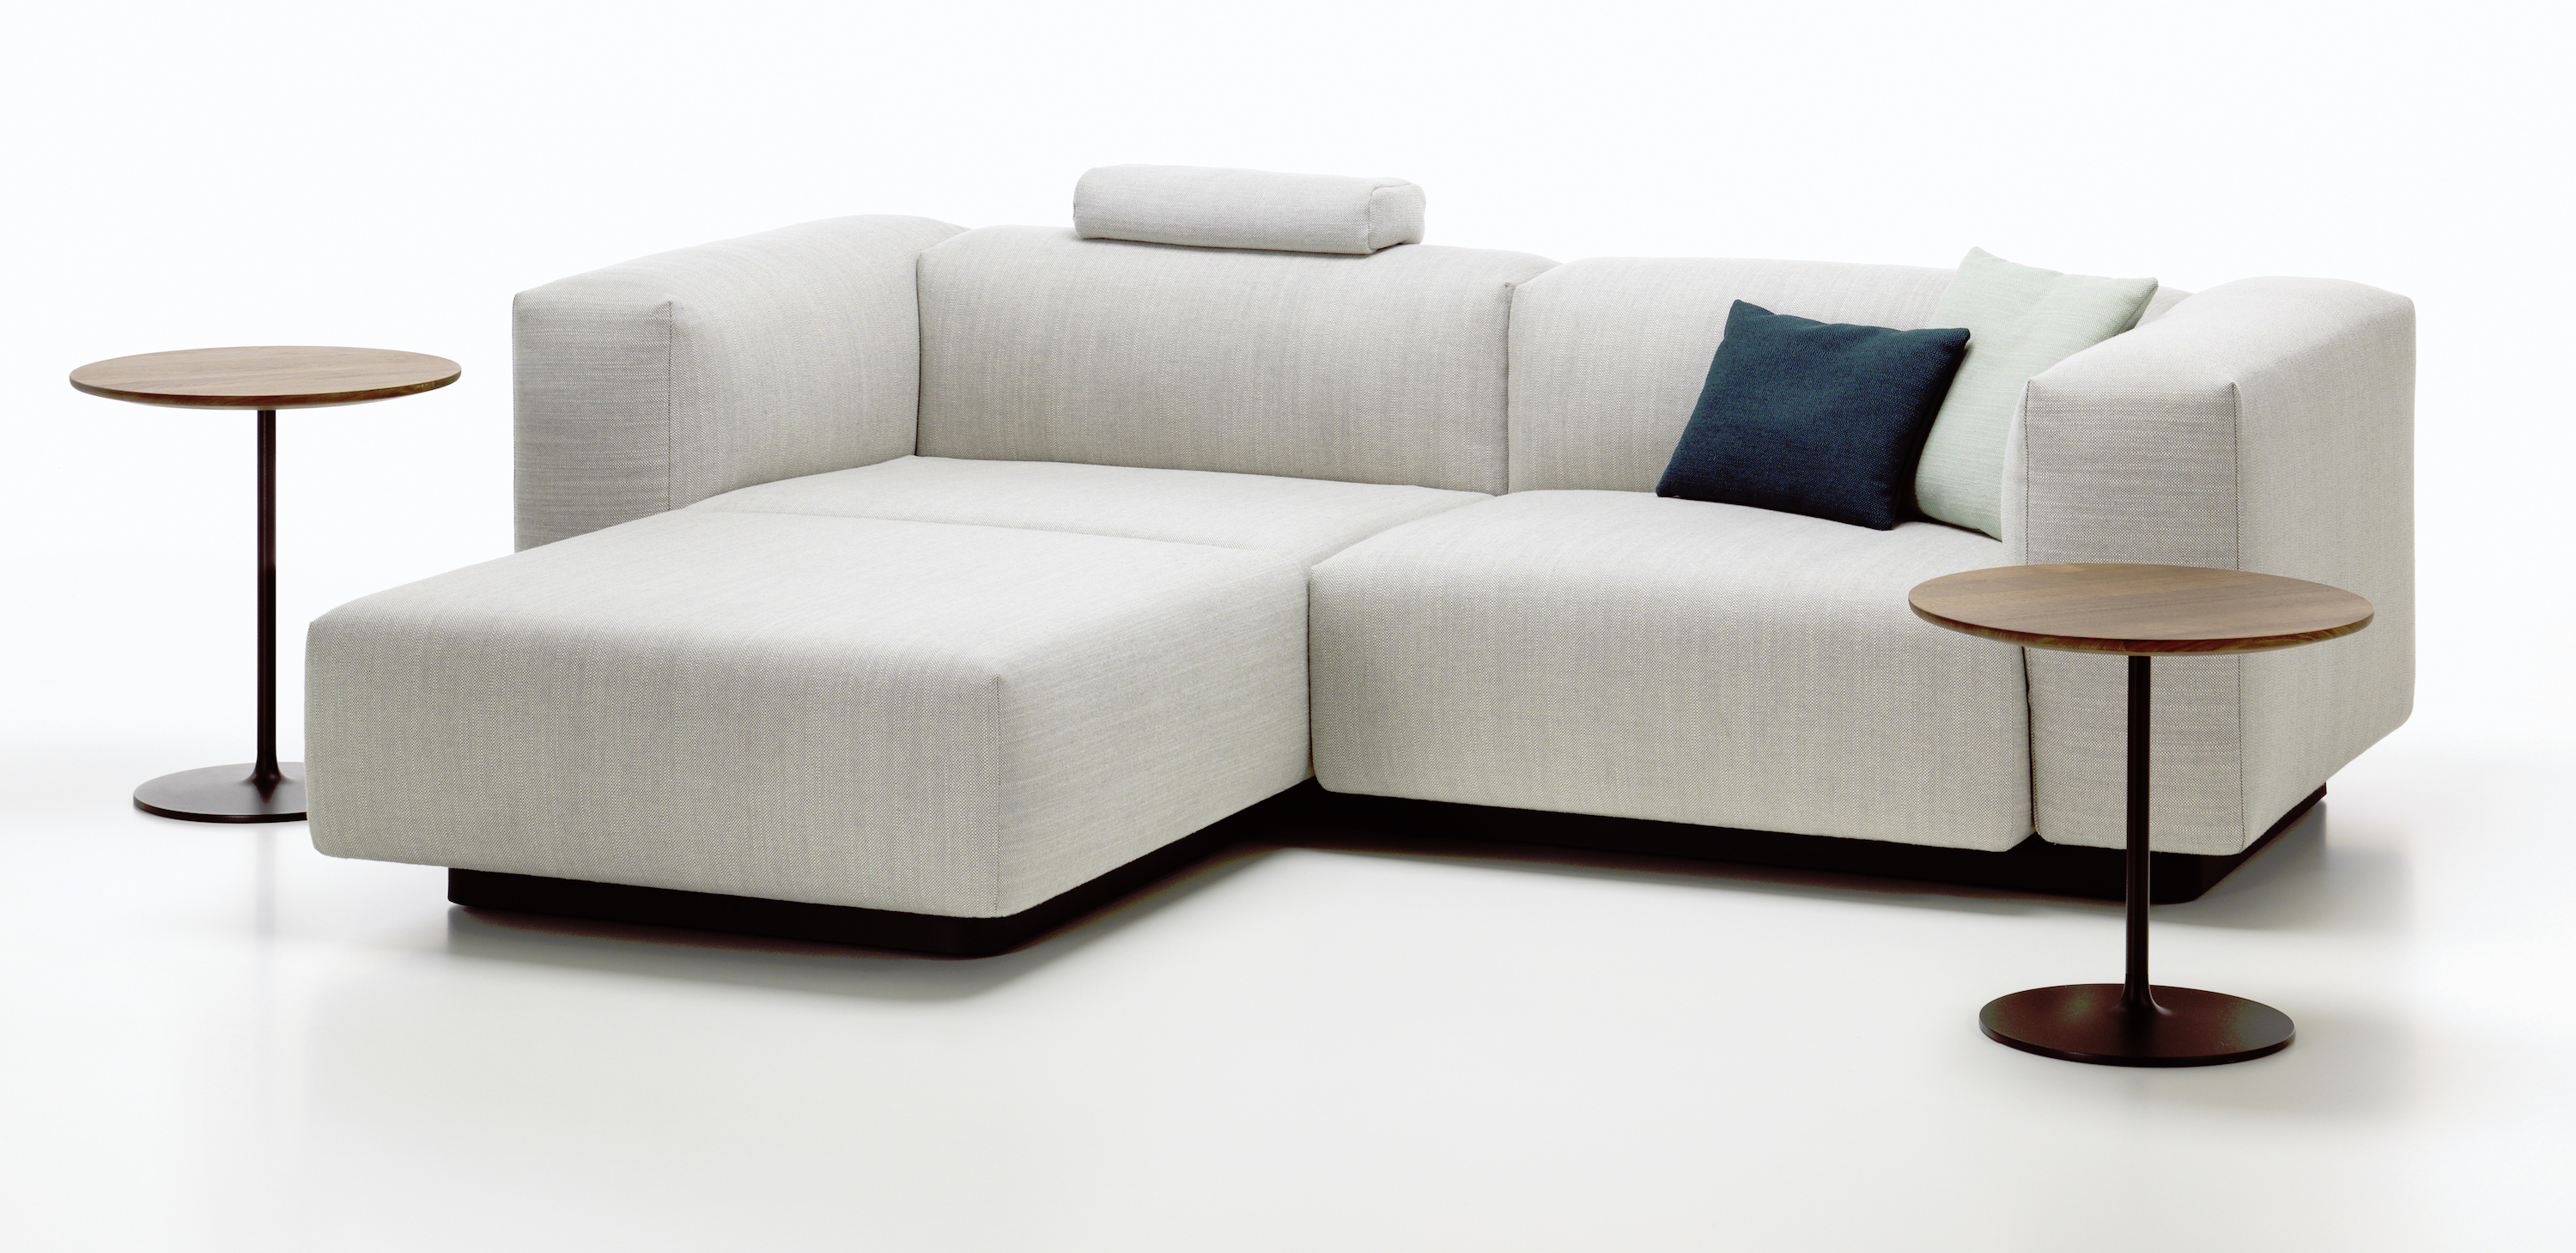 types of sofas materials l shape vitra soft modular sofa jasper morrison